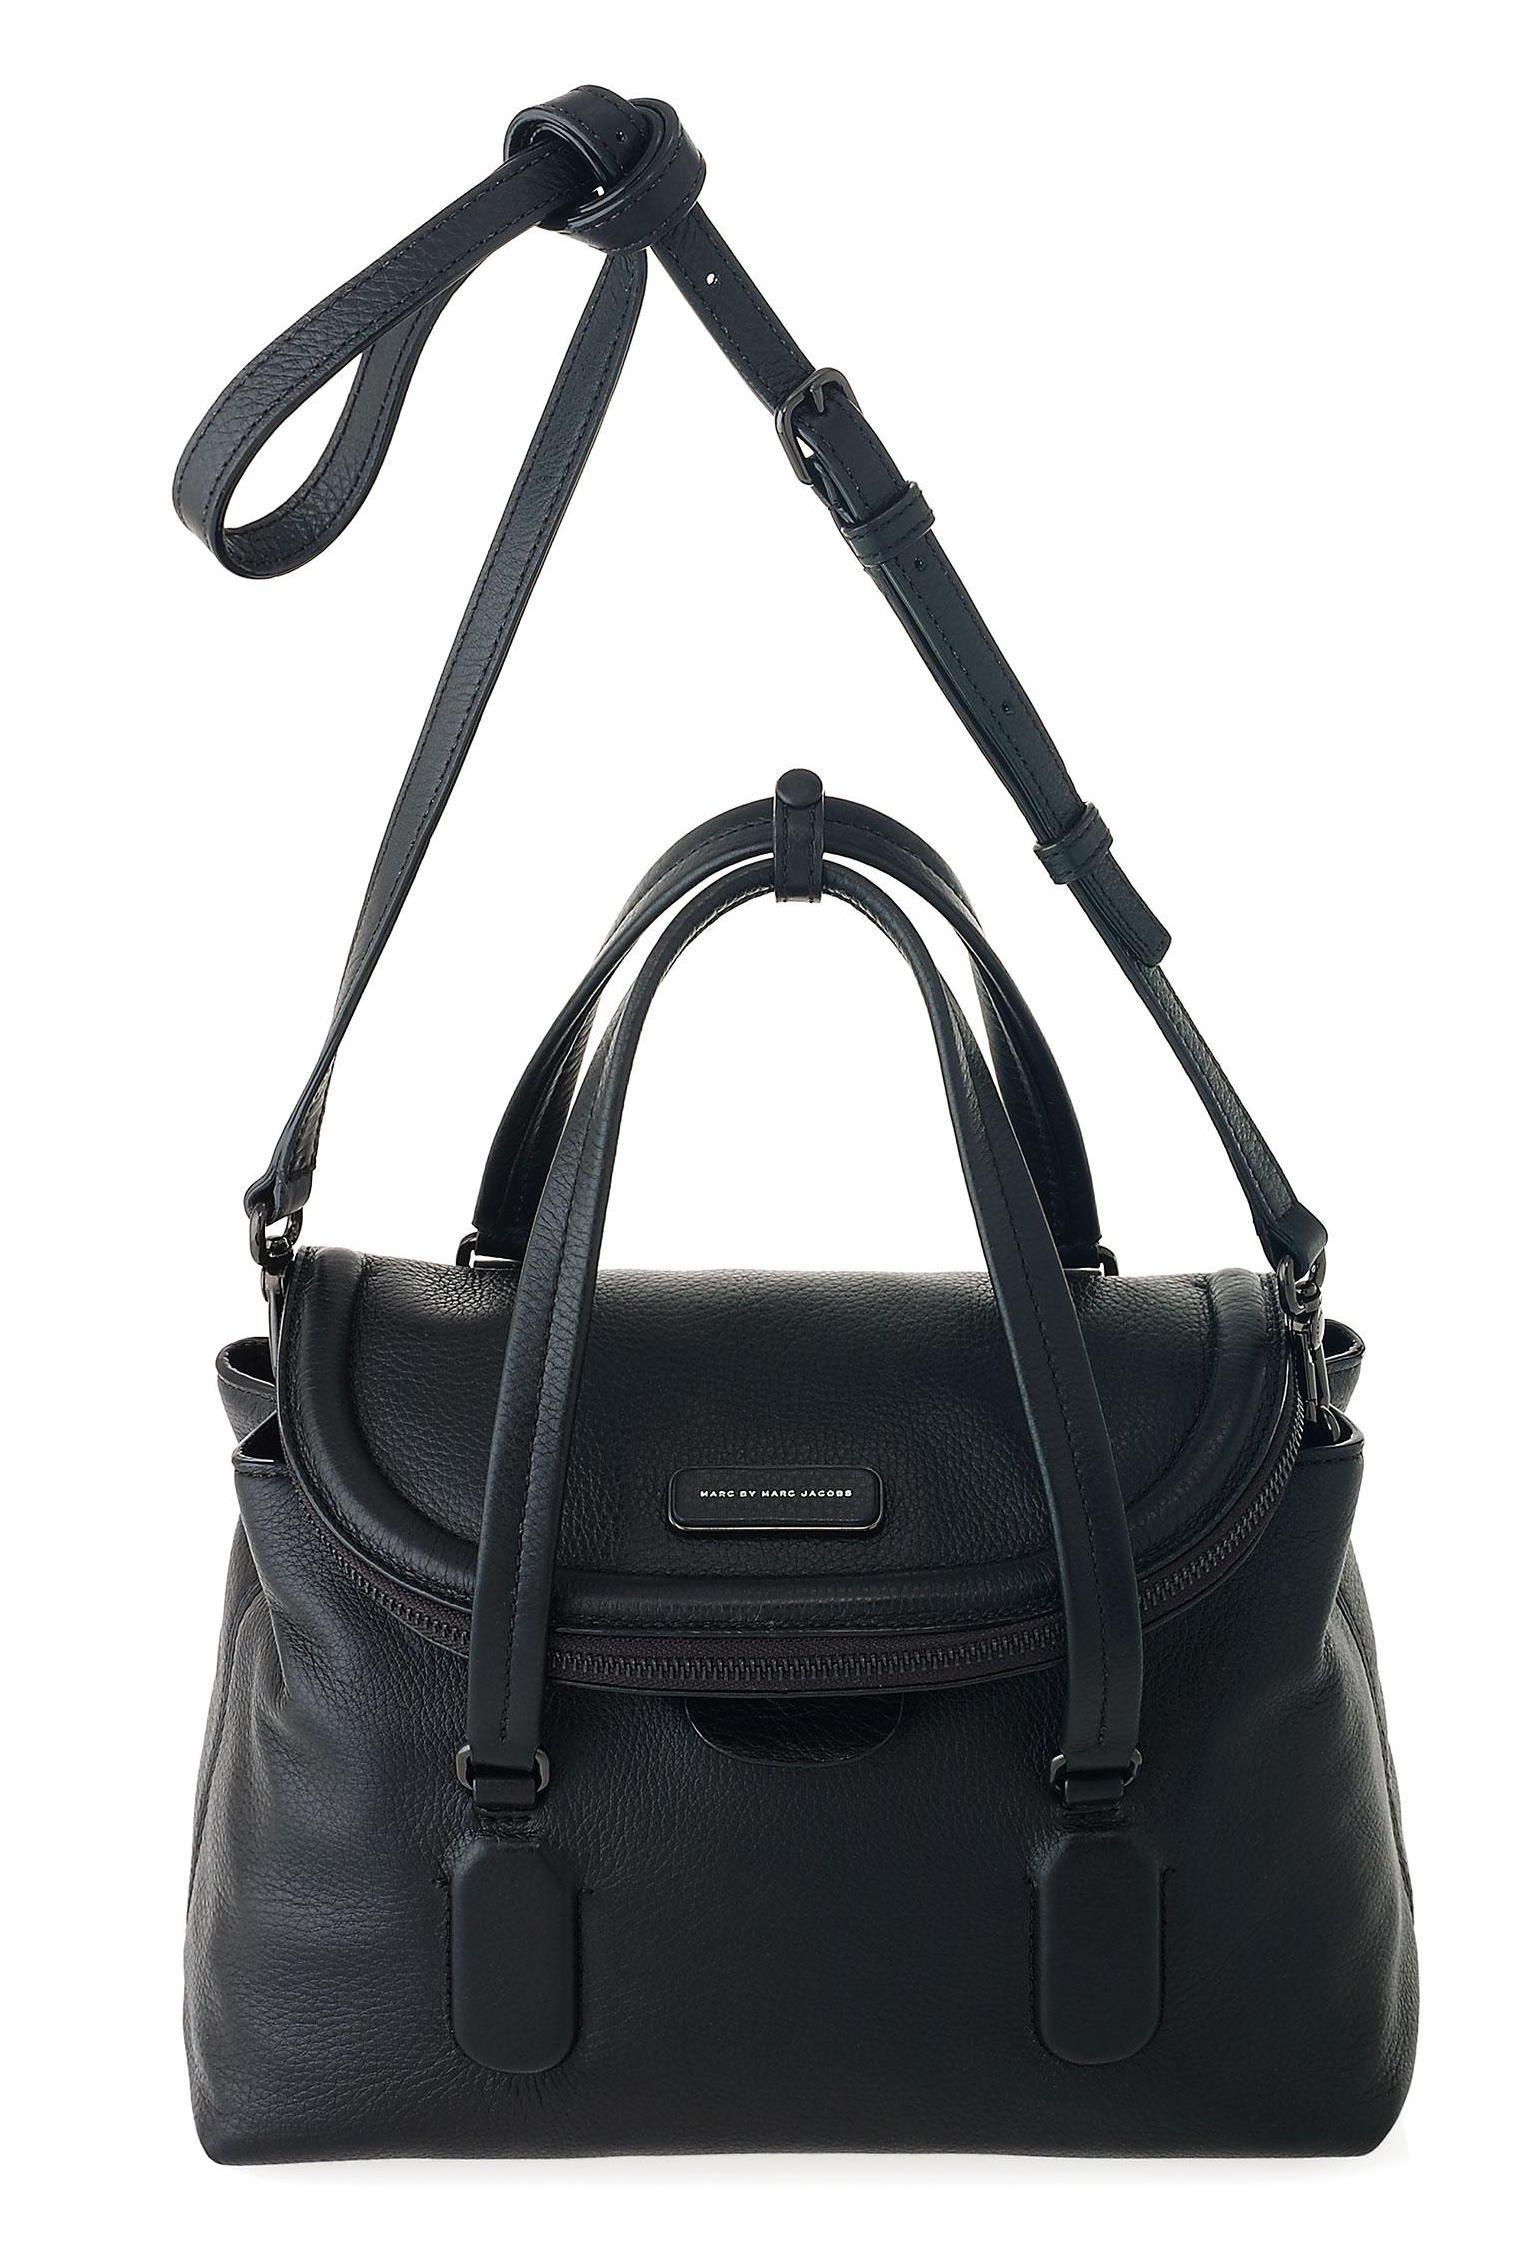 cd320197e0a5 Marc by Marc Jacobs Silicone Valley Satchel in Black